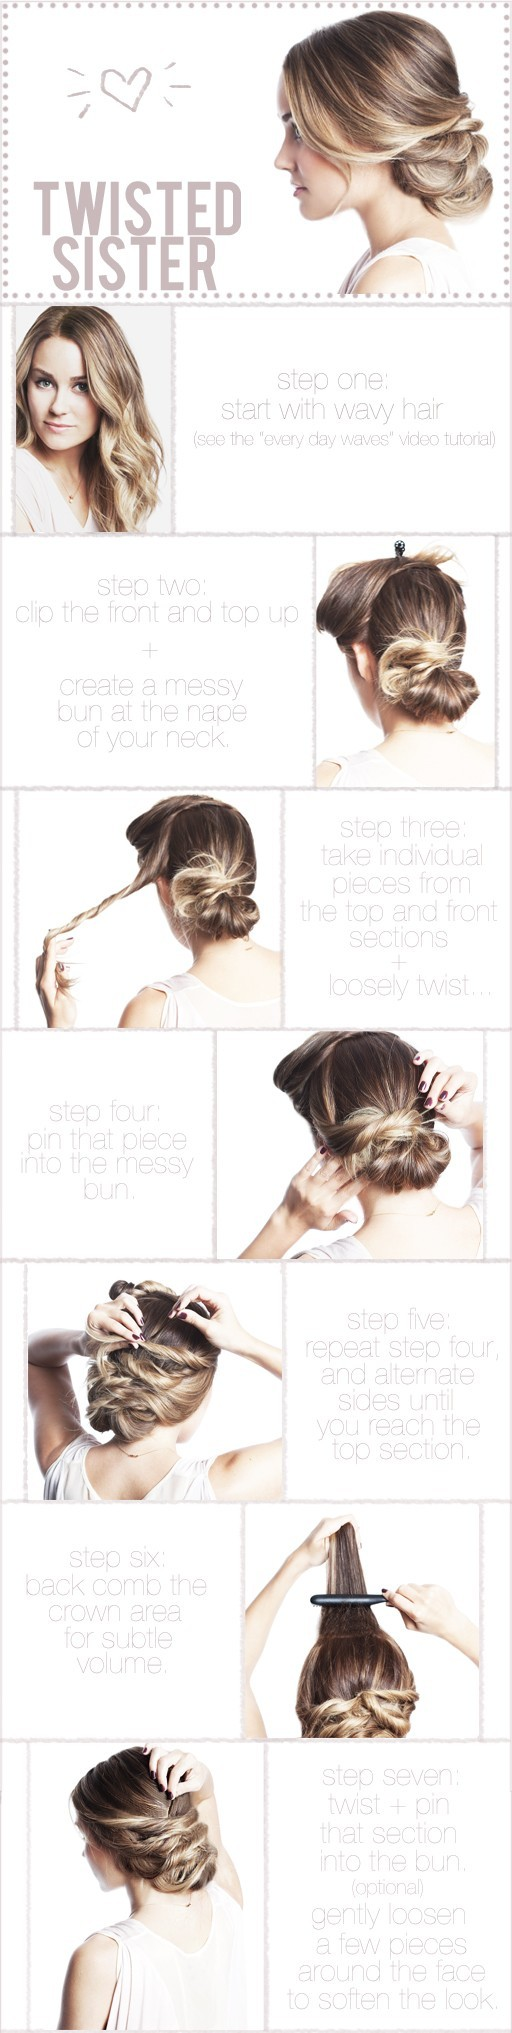 diy, ginlovers, hair, hair style, pretty